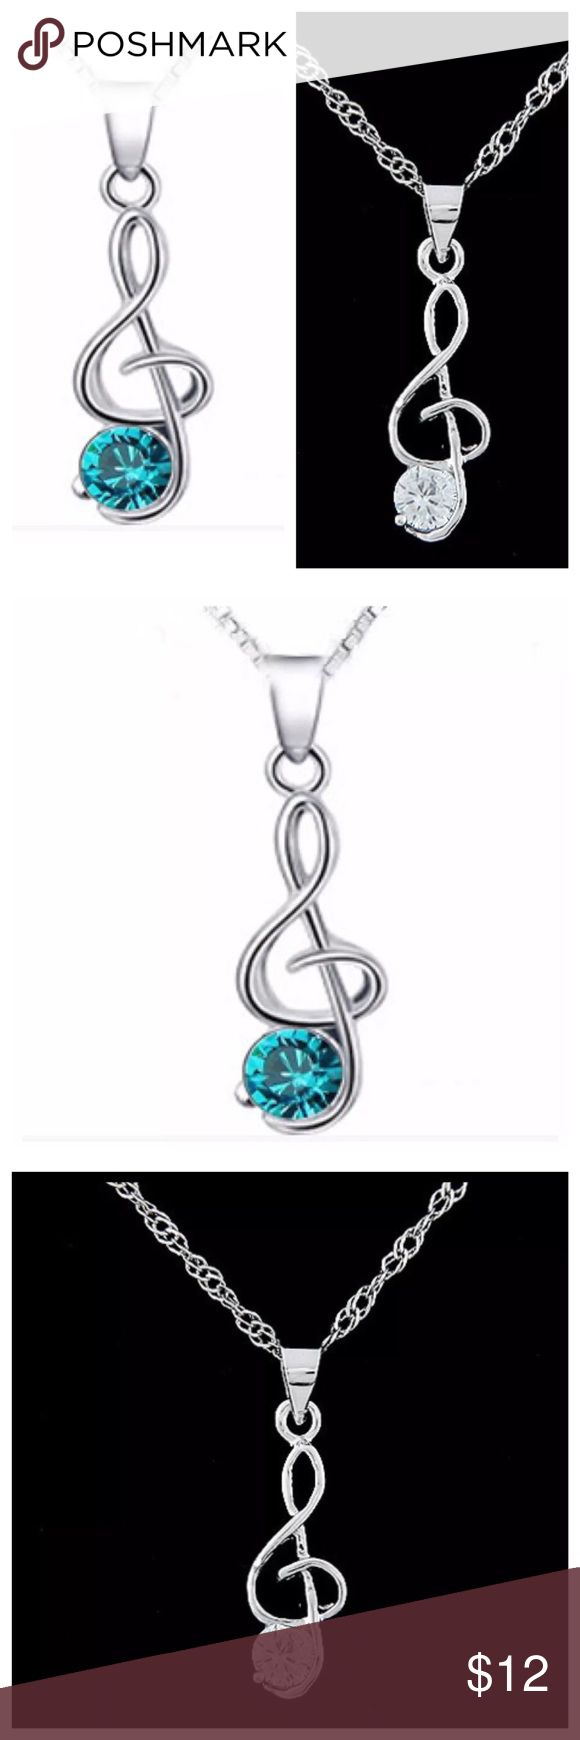 """Austrian Crystal Music Note Necklace ED29 ‼️ PRICE FIRM ‼️ 10% DISCOUNT ON 2 OR MORE ITEMS FROM MY CLOSET ‼️   Music Note Necklace Retail $22 NEW WITH TAGS  FABULOUS! Beautiful Austrian crystal adorns this silver color metal music note.  This is sure to dress up even the most basic outfit!  Necklace is approximately 20"""".  Note is approximately 1"""". Jewelry Necklaces"""